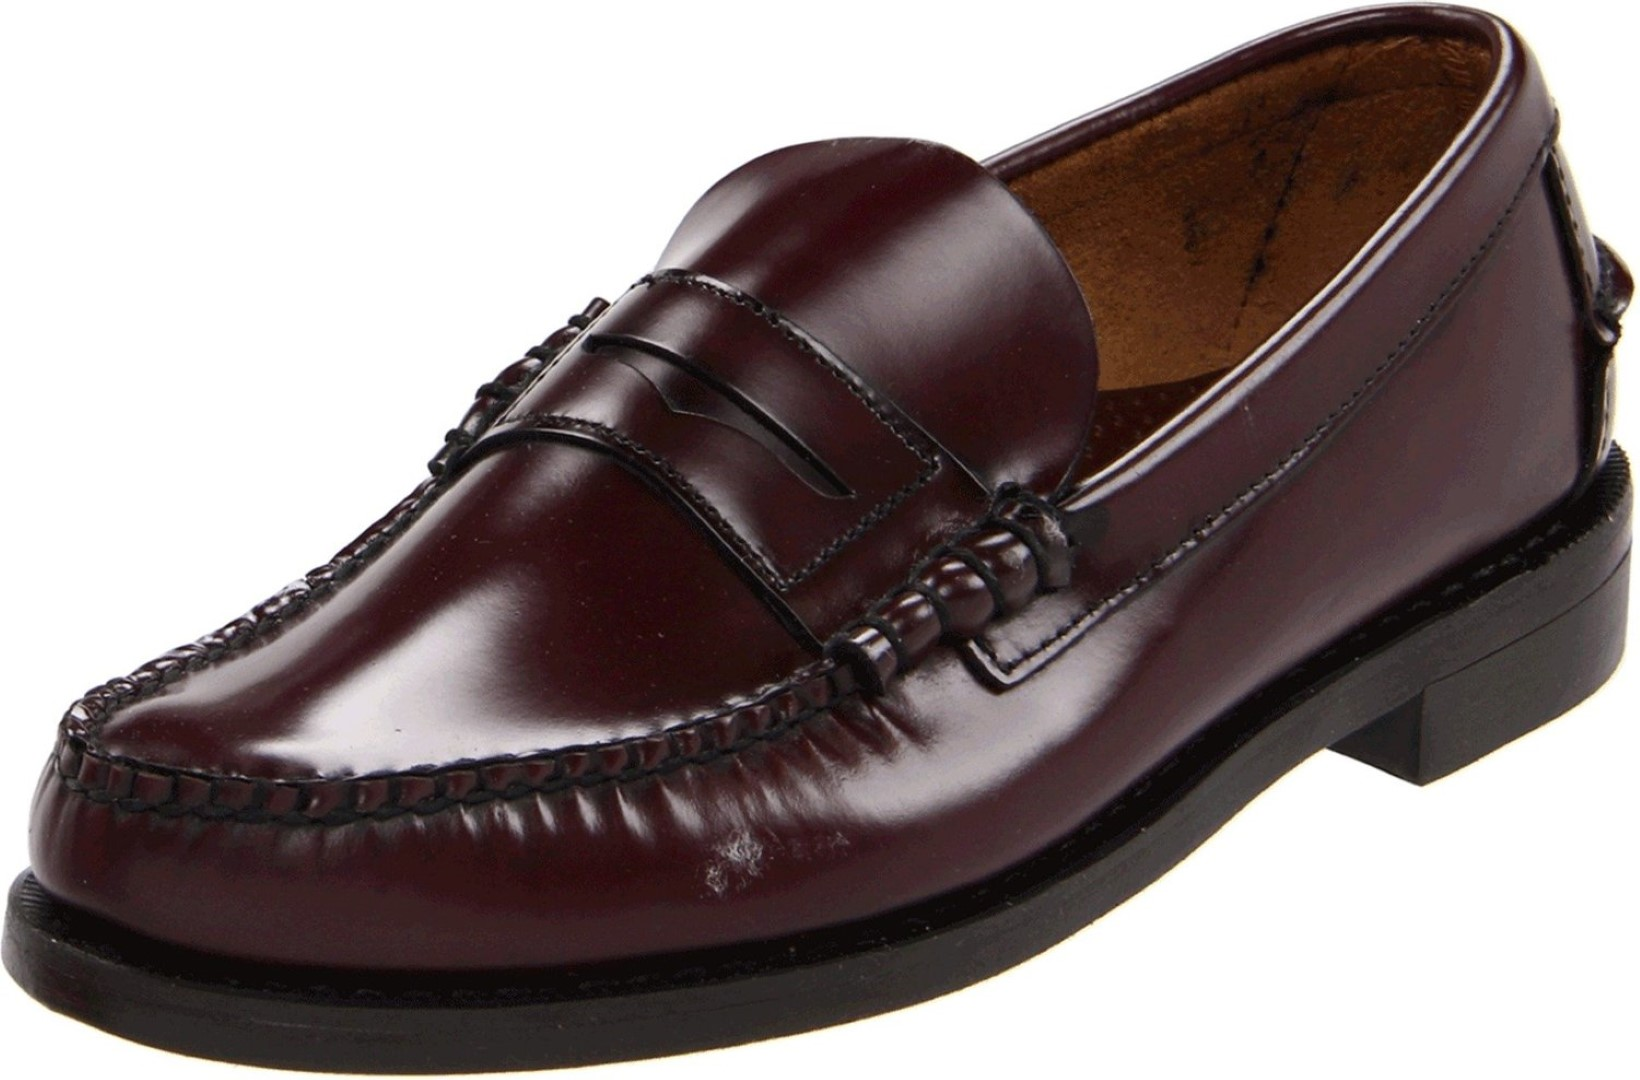 Sebago Men's Classic Antique Brown Penny Loafers by Sebago